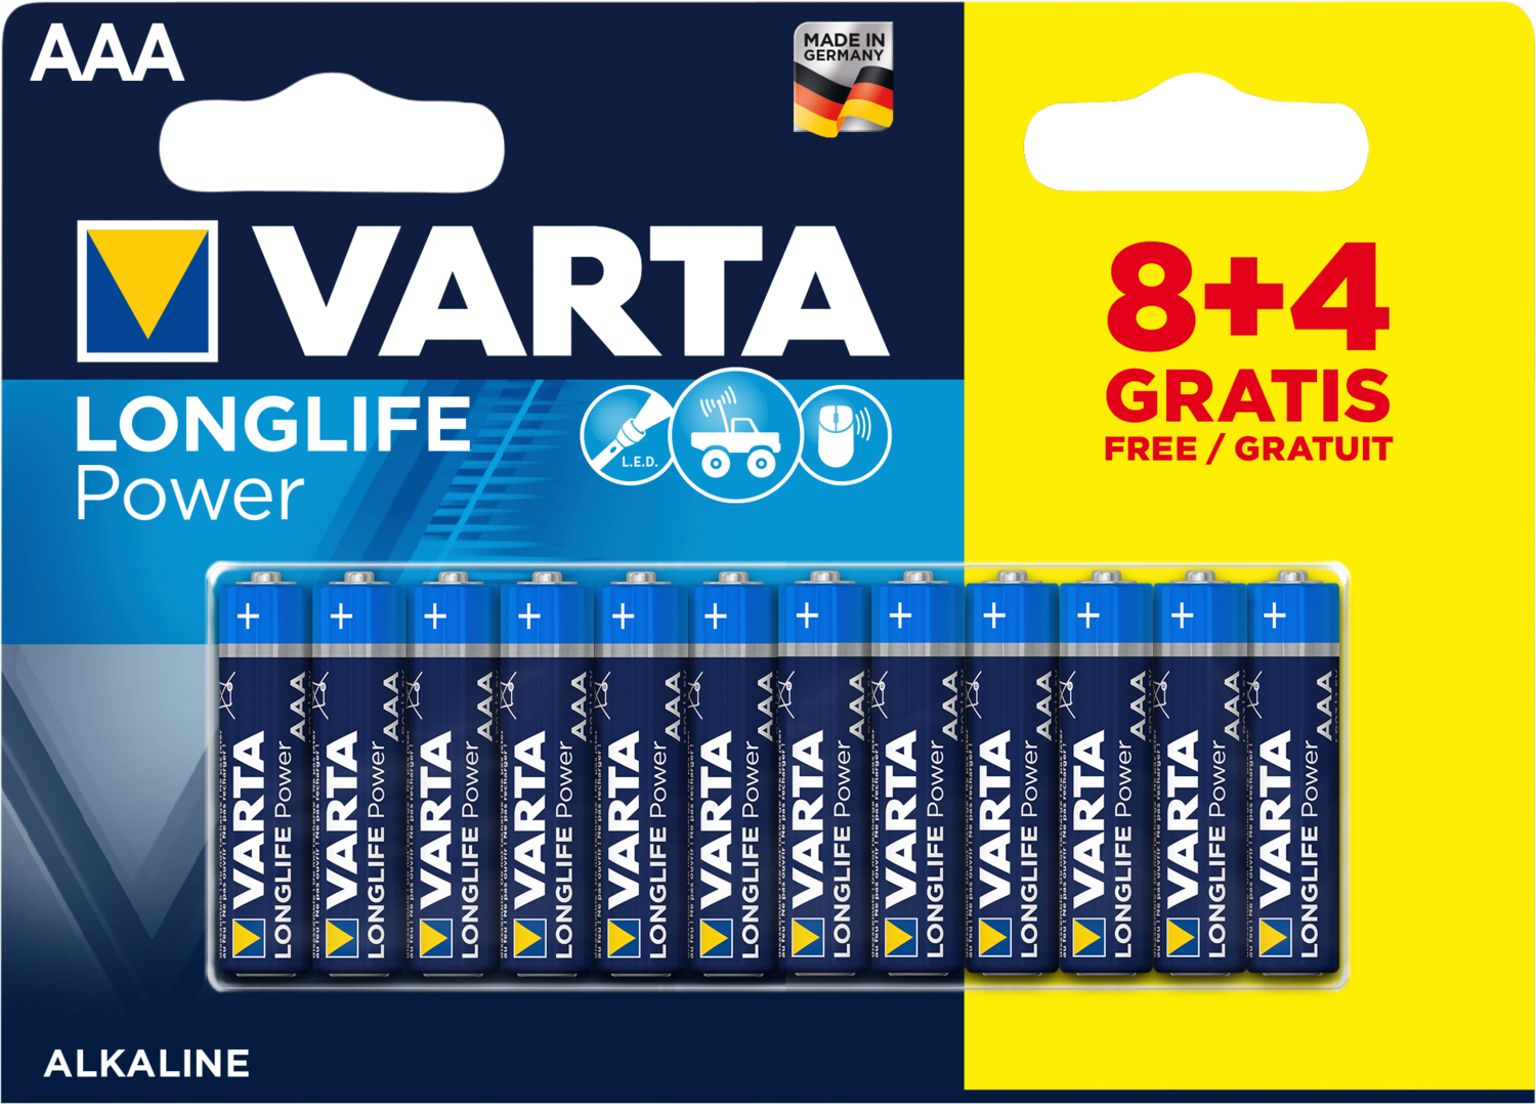 VARTA Batterie AAA Longlife Power